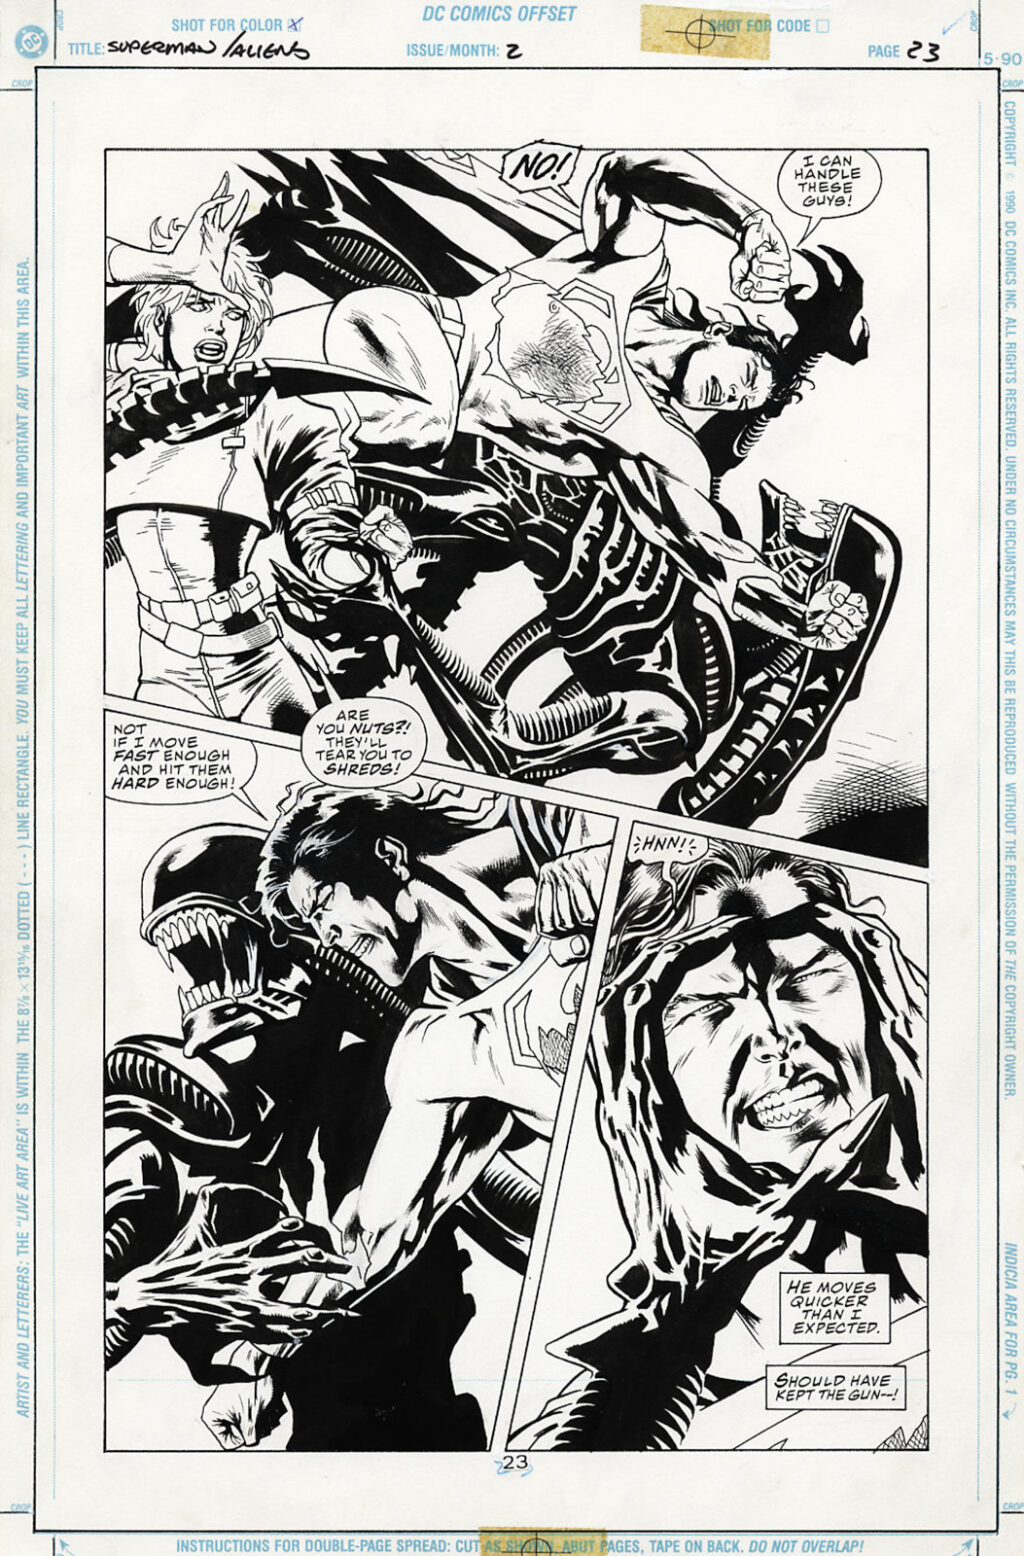 Superman vs. Aliens issue 2 page 23 by Dan Jurgens and Kevin Nowlan